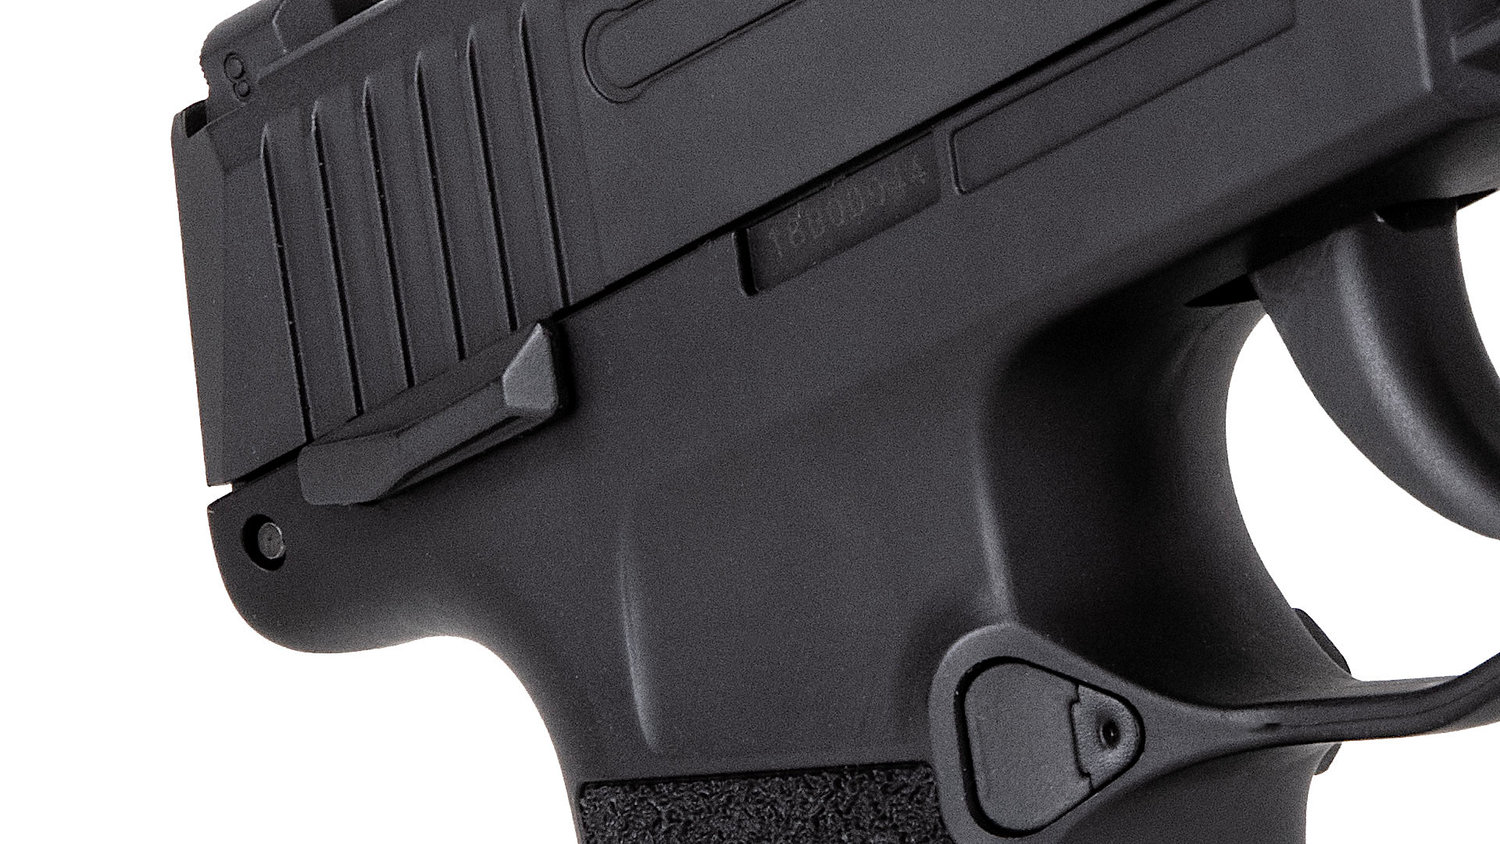 Sig Sauer P365 CO2 Blowback BB Pistol Table Top Review — Replica